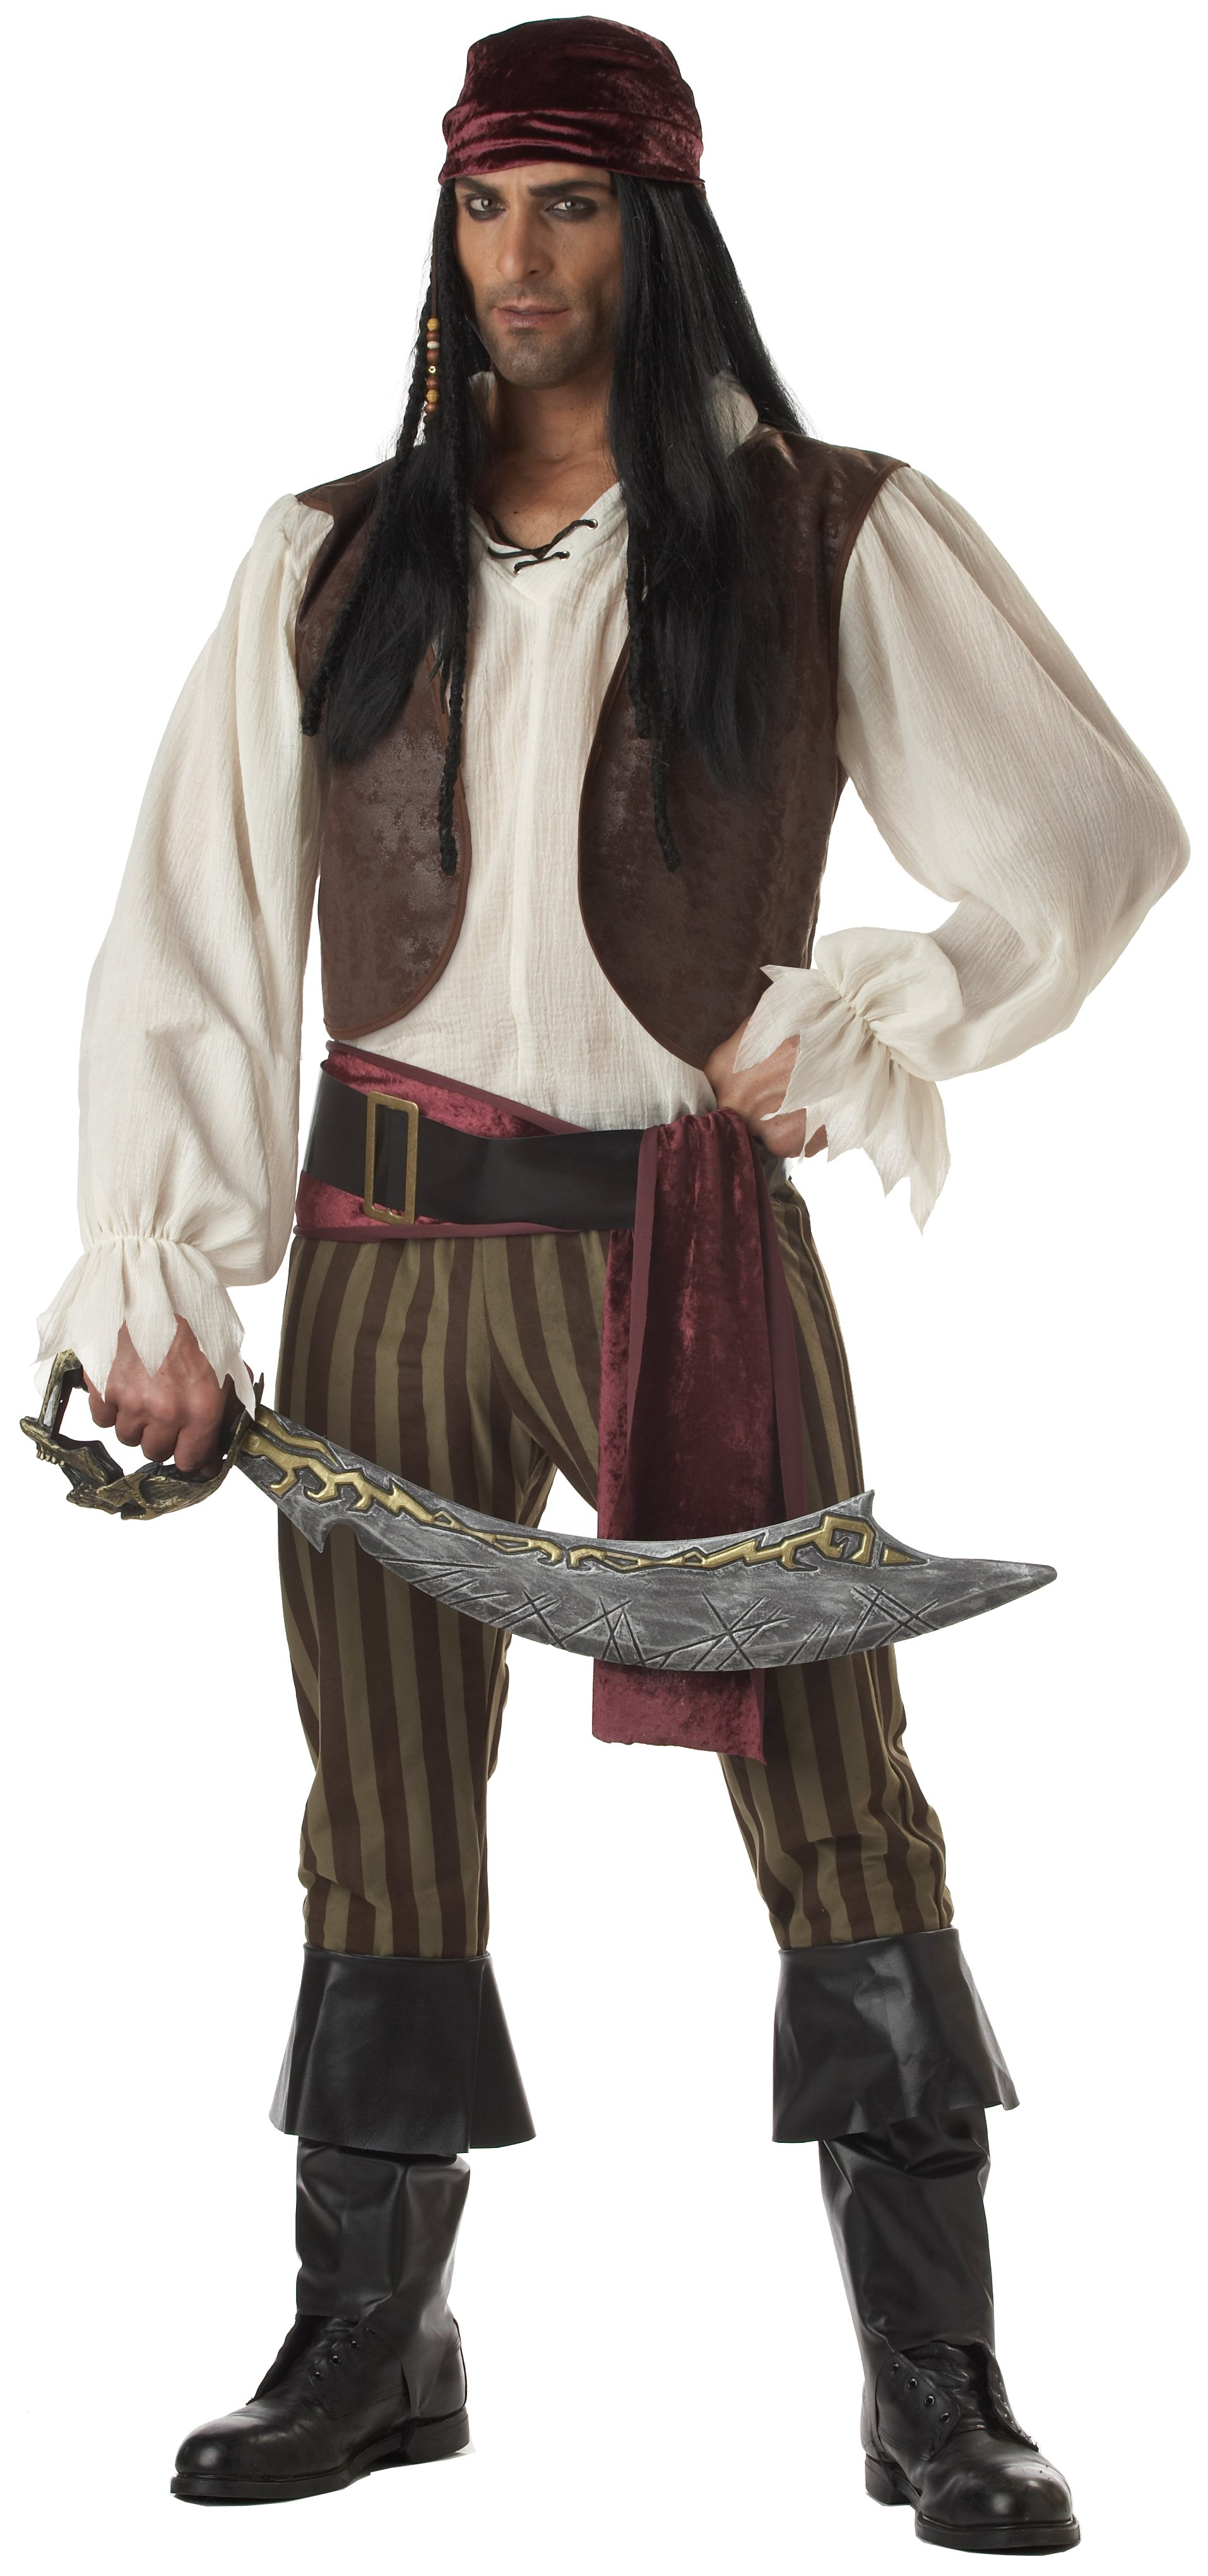 rogue pirate adult costume buycostumescom - Pirate Halloween Costume For Women